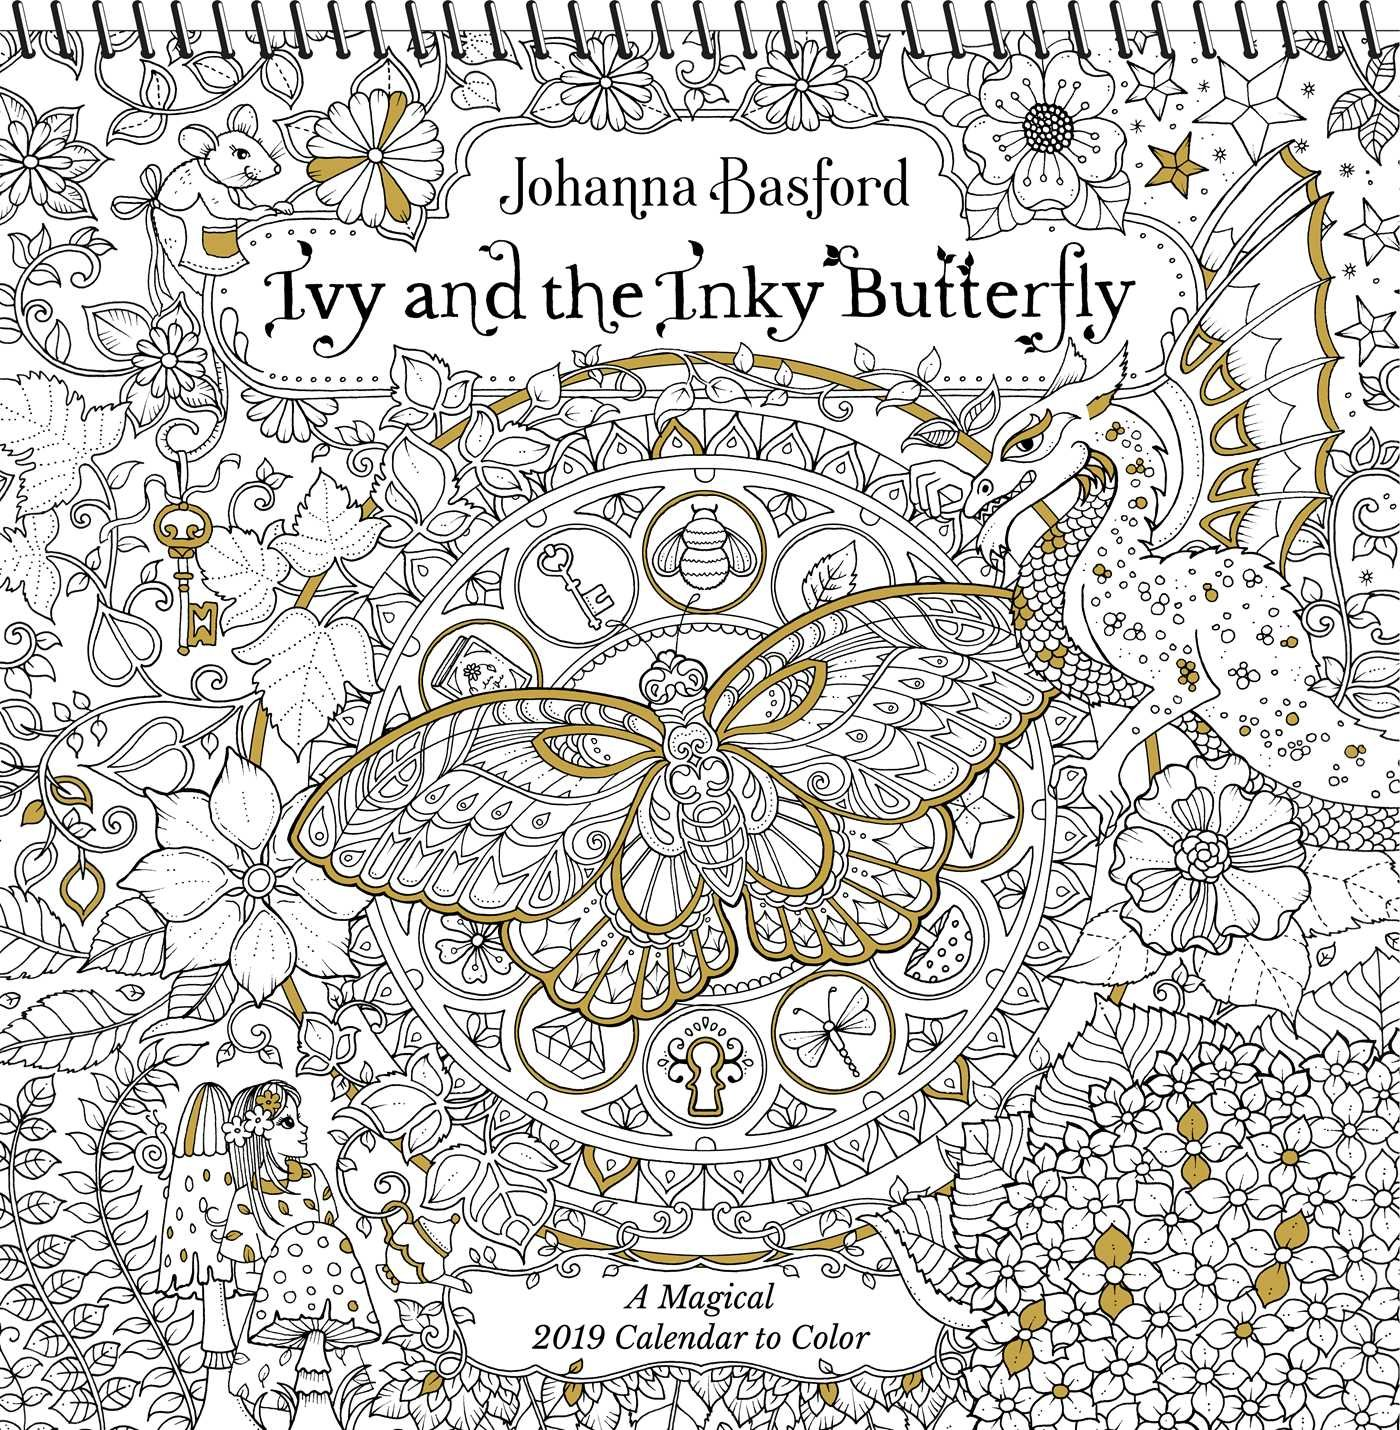 Johanna Basford 2019 Coloring Calendar With Ivy And The Inky Butterfly Wall A Magical